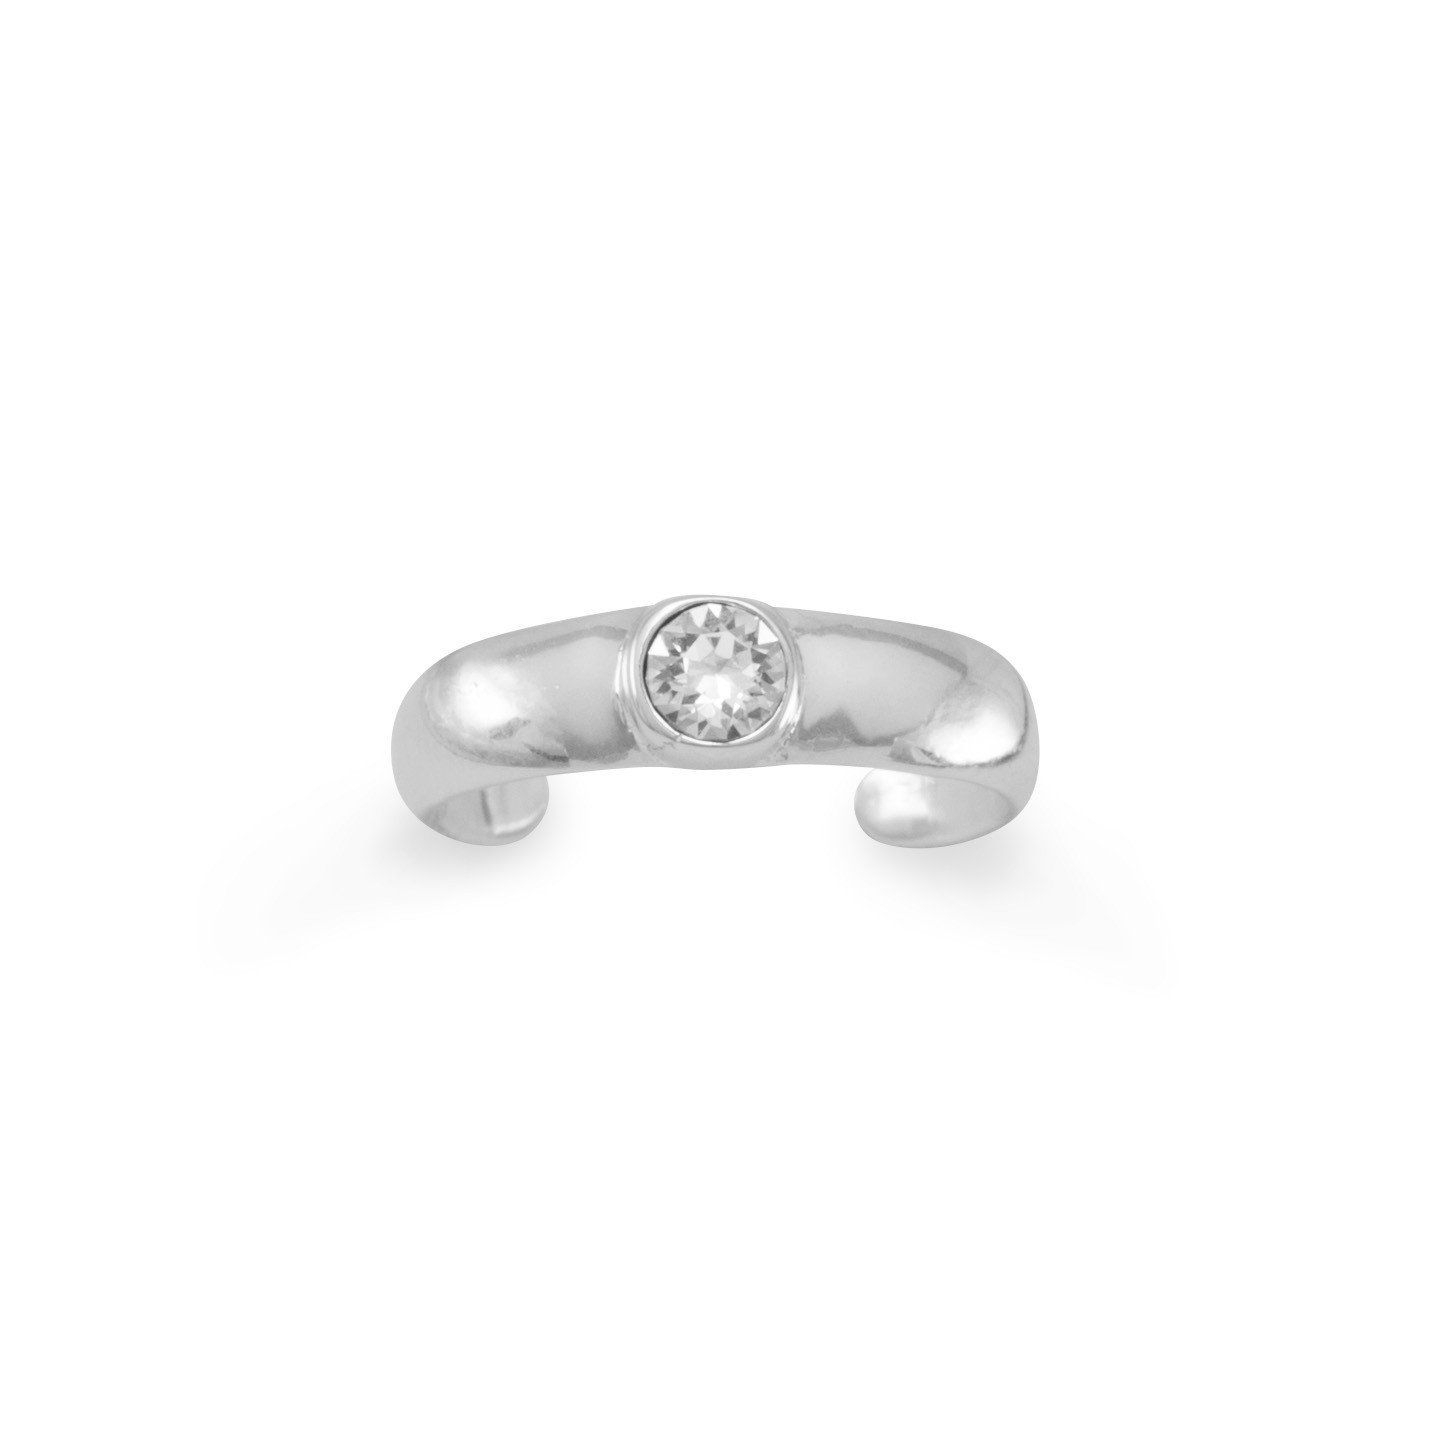 Clear Crystal Toe Ring | Products | Pinterest | Toe Rings And Products With Regard To Best And Newest Crystal Toe Rings (View 7 of 15)